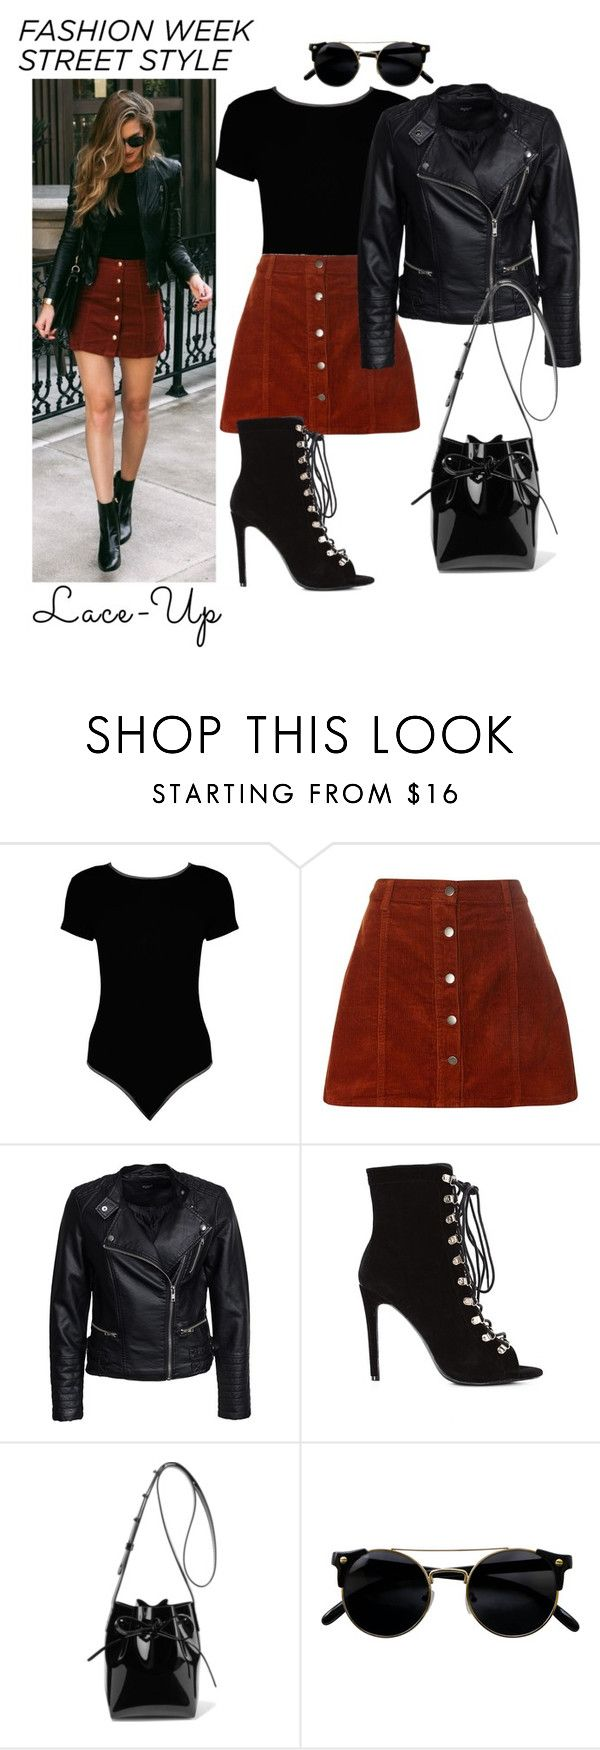 """Lace up"" by dudasouza04 ❤ liked on Polyvore featuring Boohoo, Dorothy Perkins, Sisters Point and Mansur Gavriel"